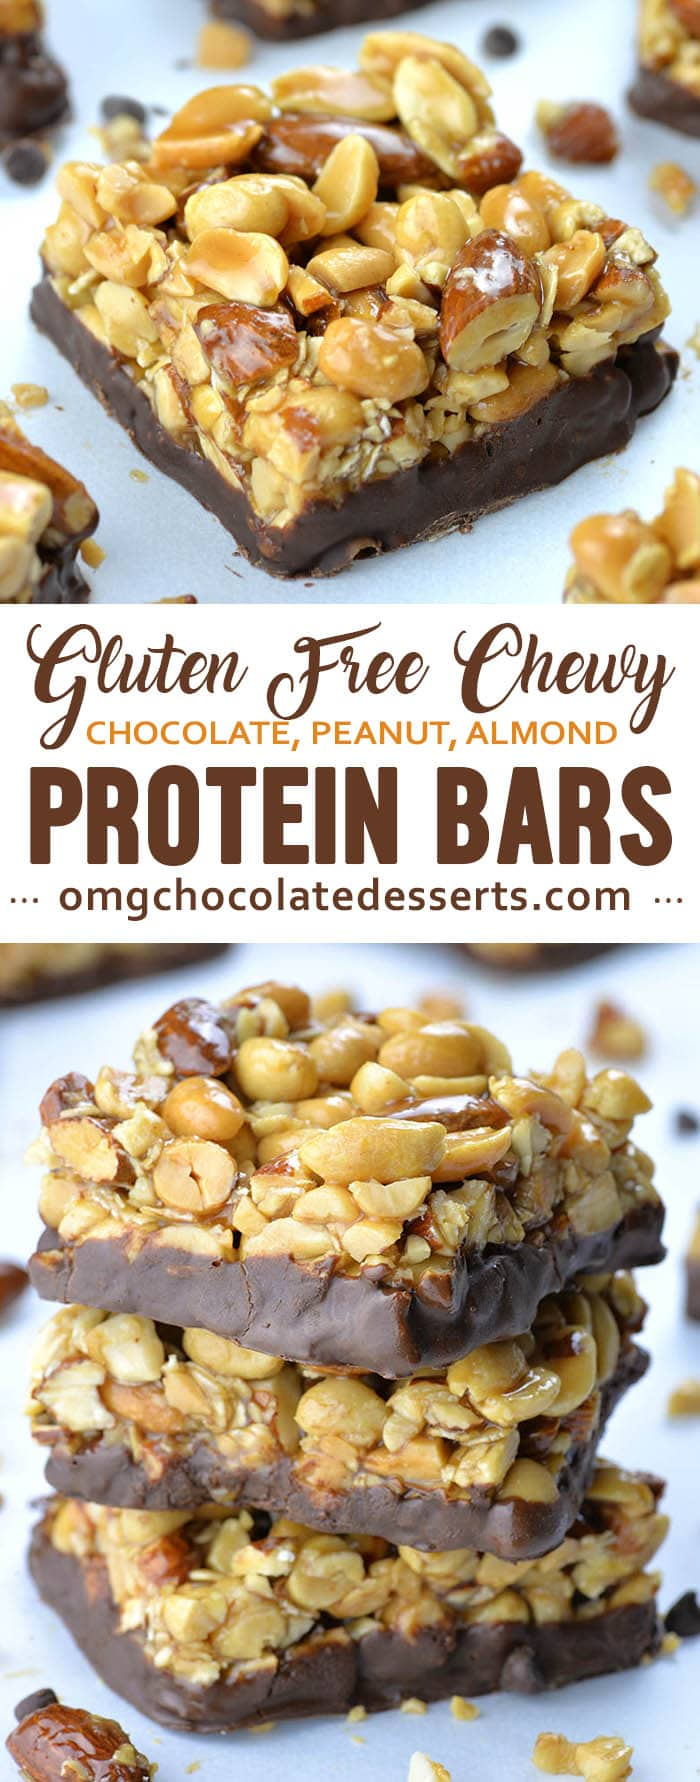 Gluten Free Protein Bars are great to have on hand while you are at work or keep in your purse wherever you go. They are healthy snack that you can pack up into the lunch box for your kids to take to school.